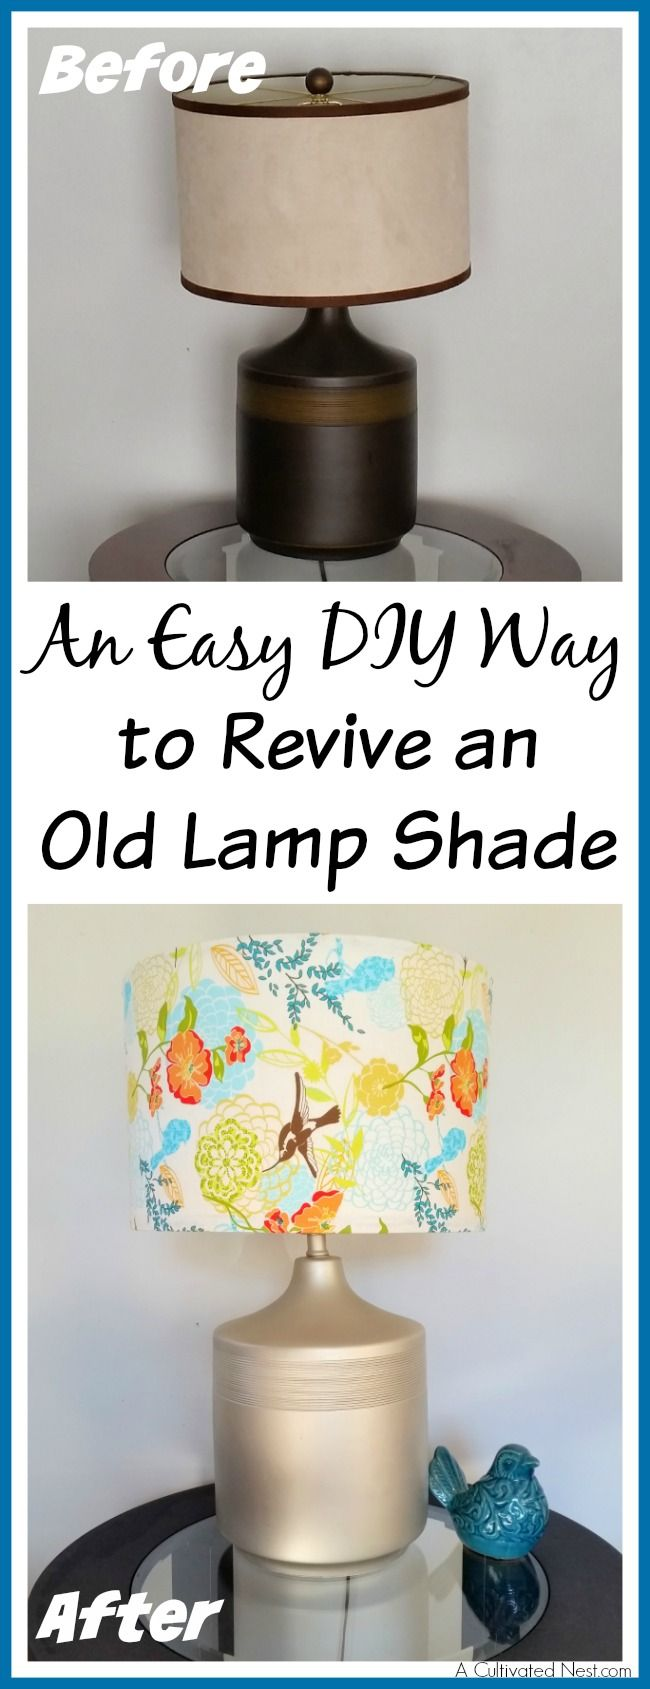 Easy DIY Way to Revive an Old Lamp Shade Old lamp shades